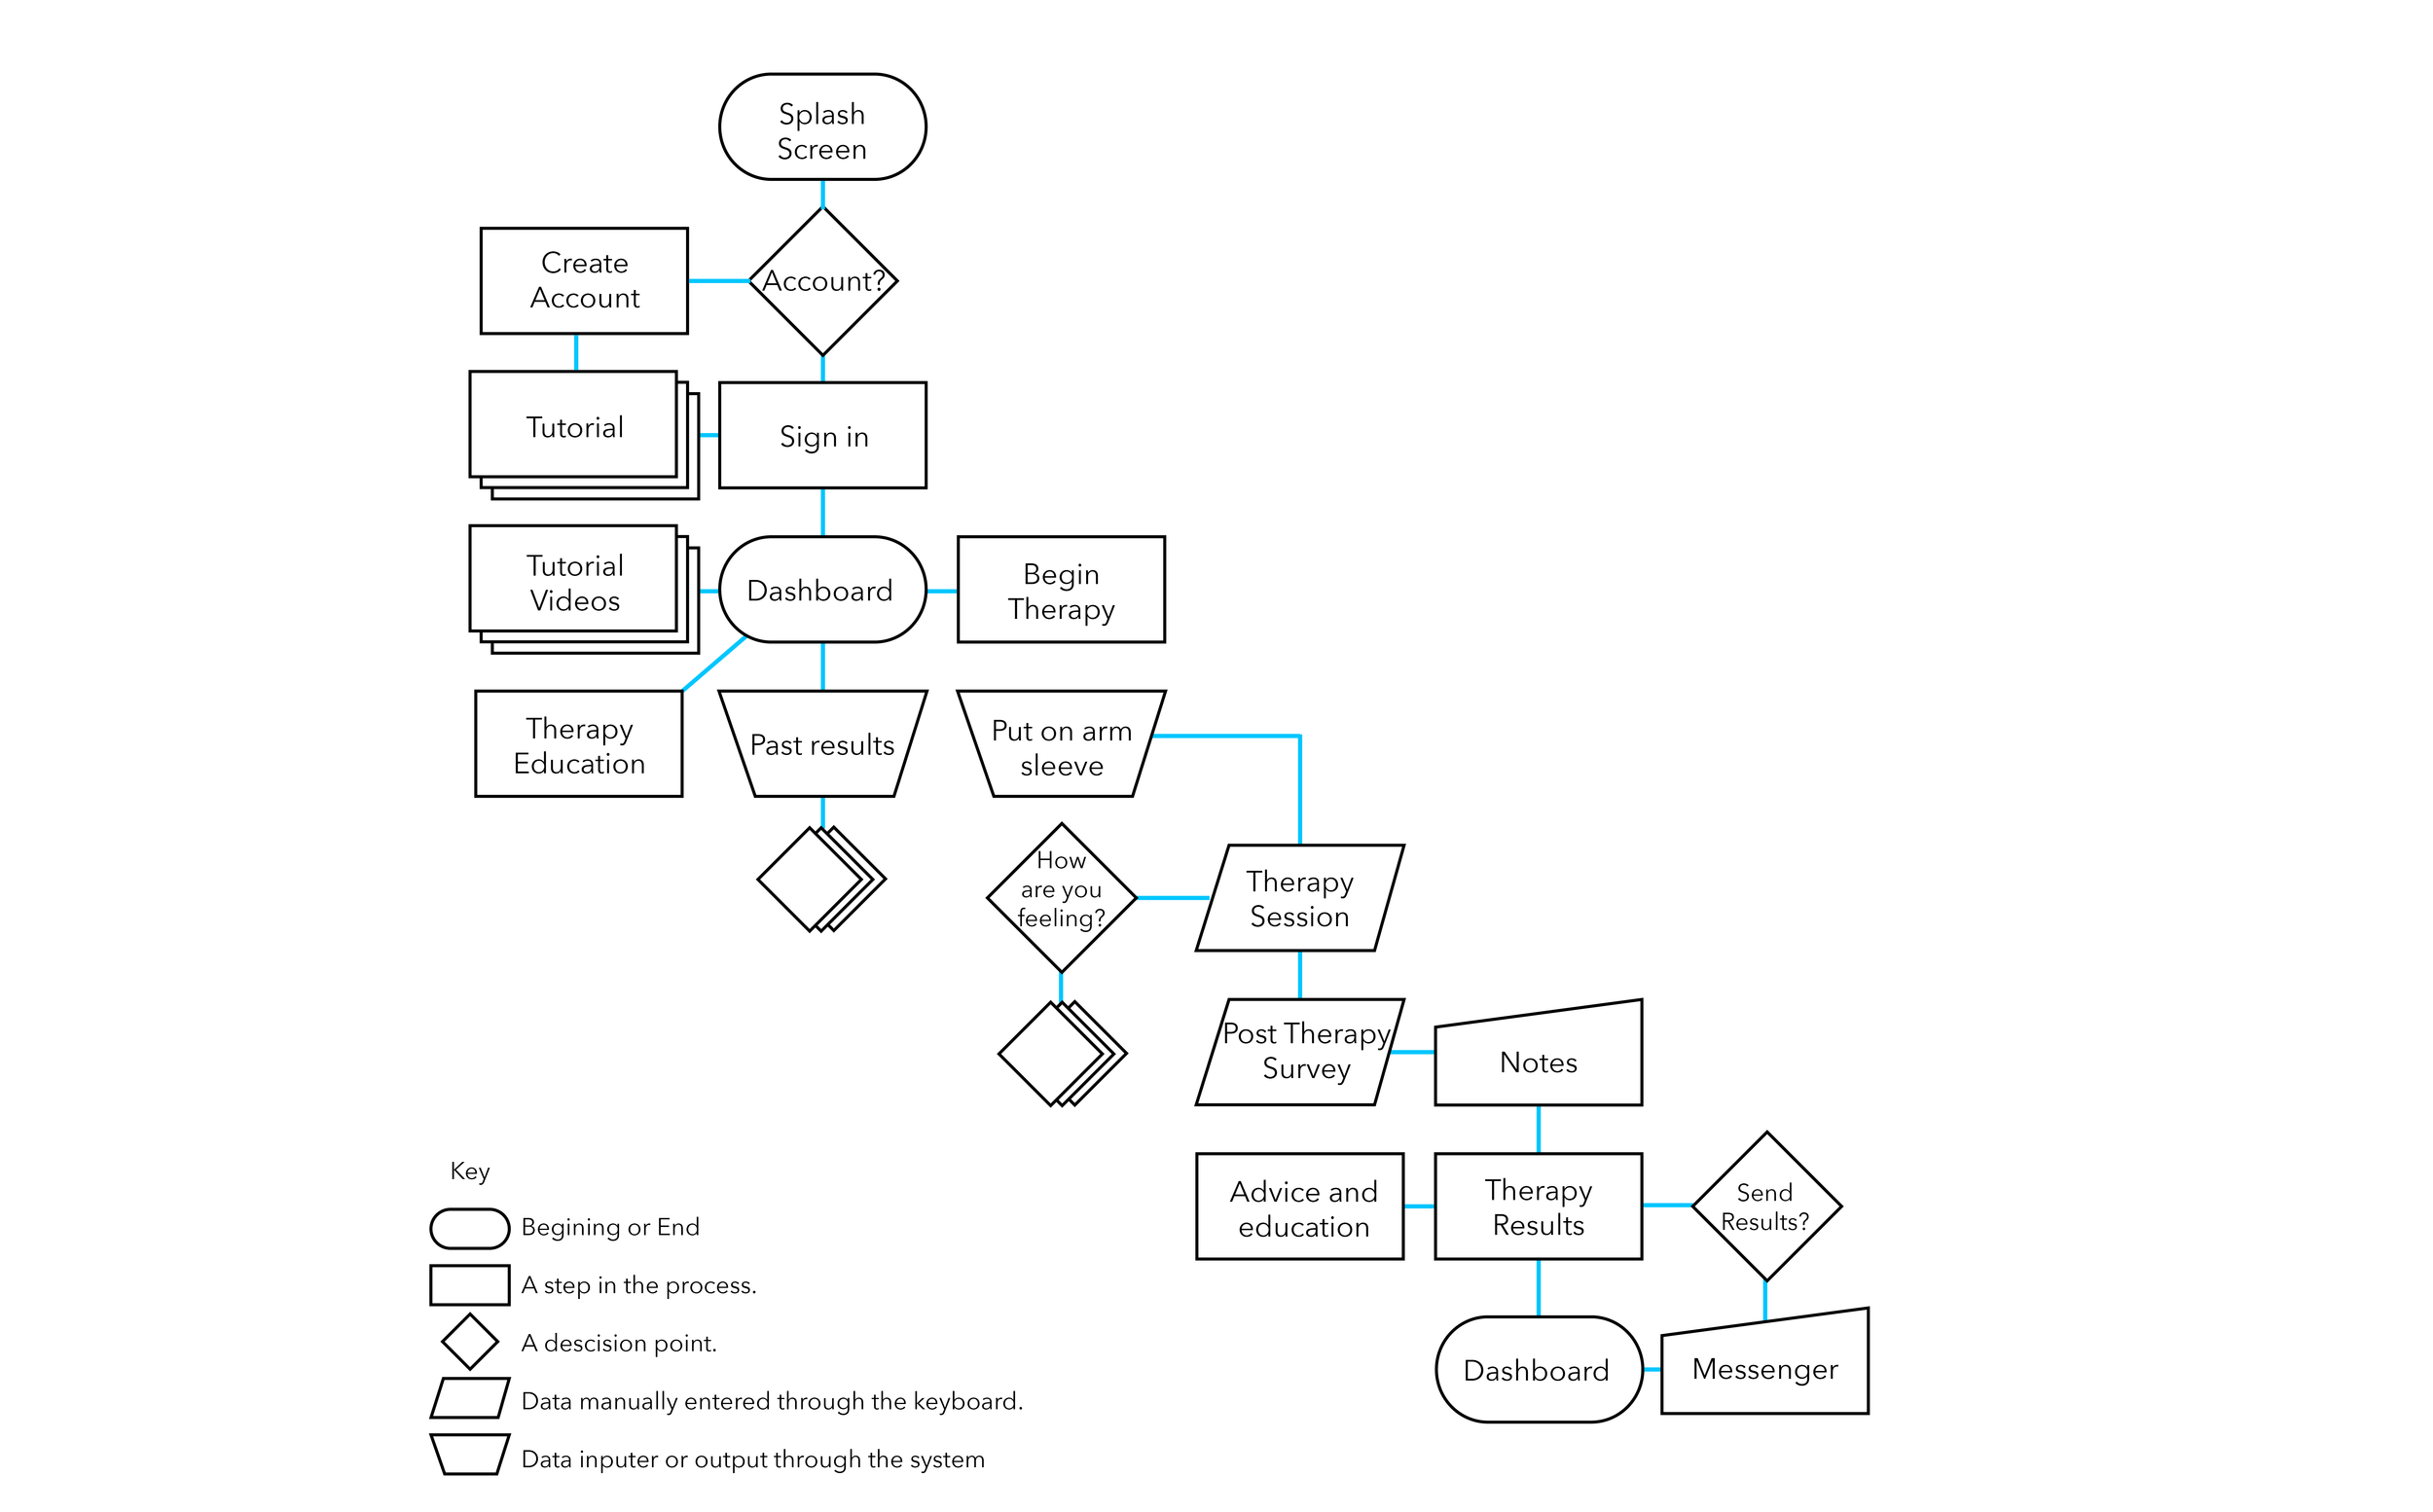 therapyinformationarchitecture.png